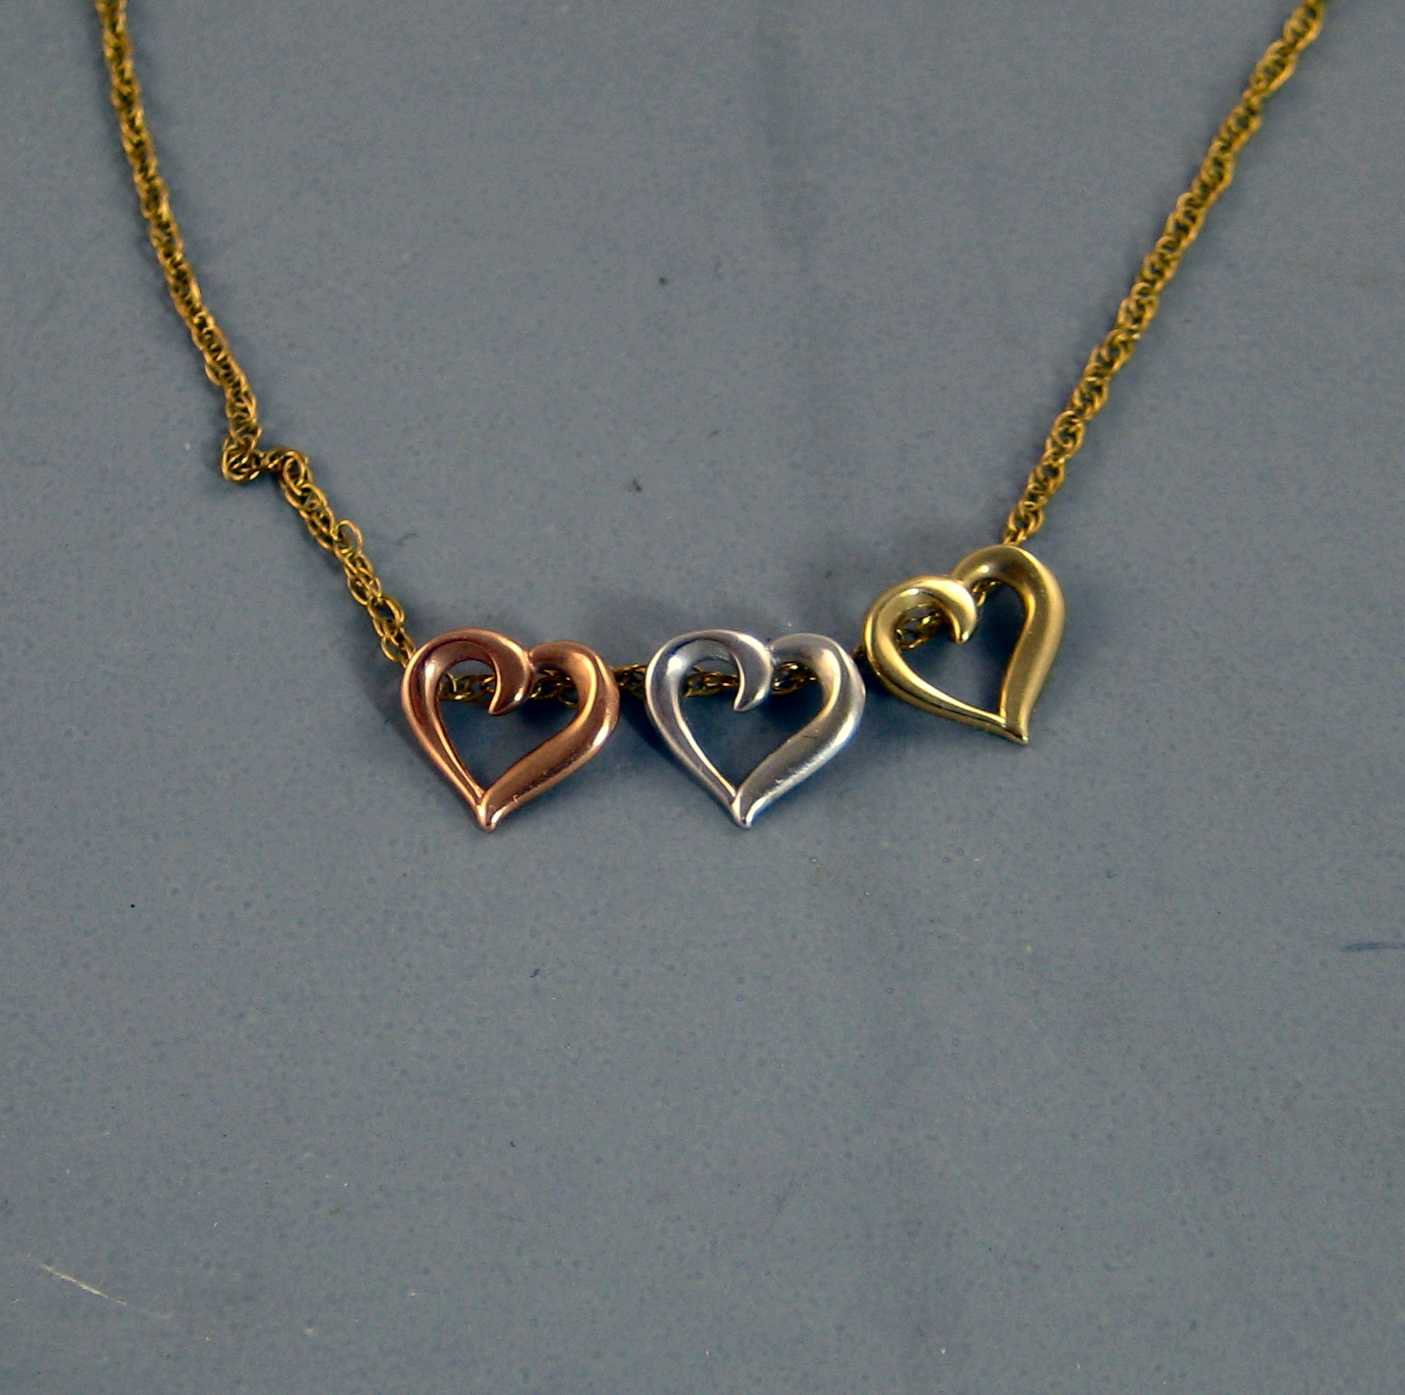 Three Hearts on a Chain Pendant 10K Yellow, White, and Rose Gold